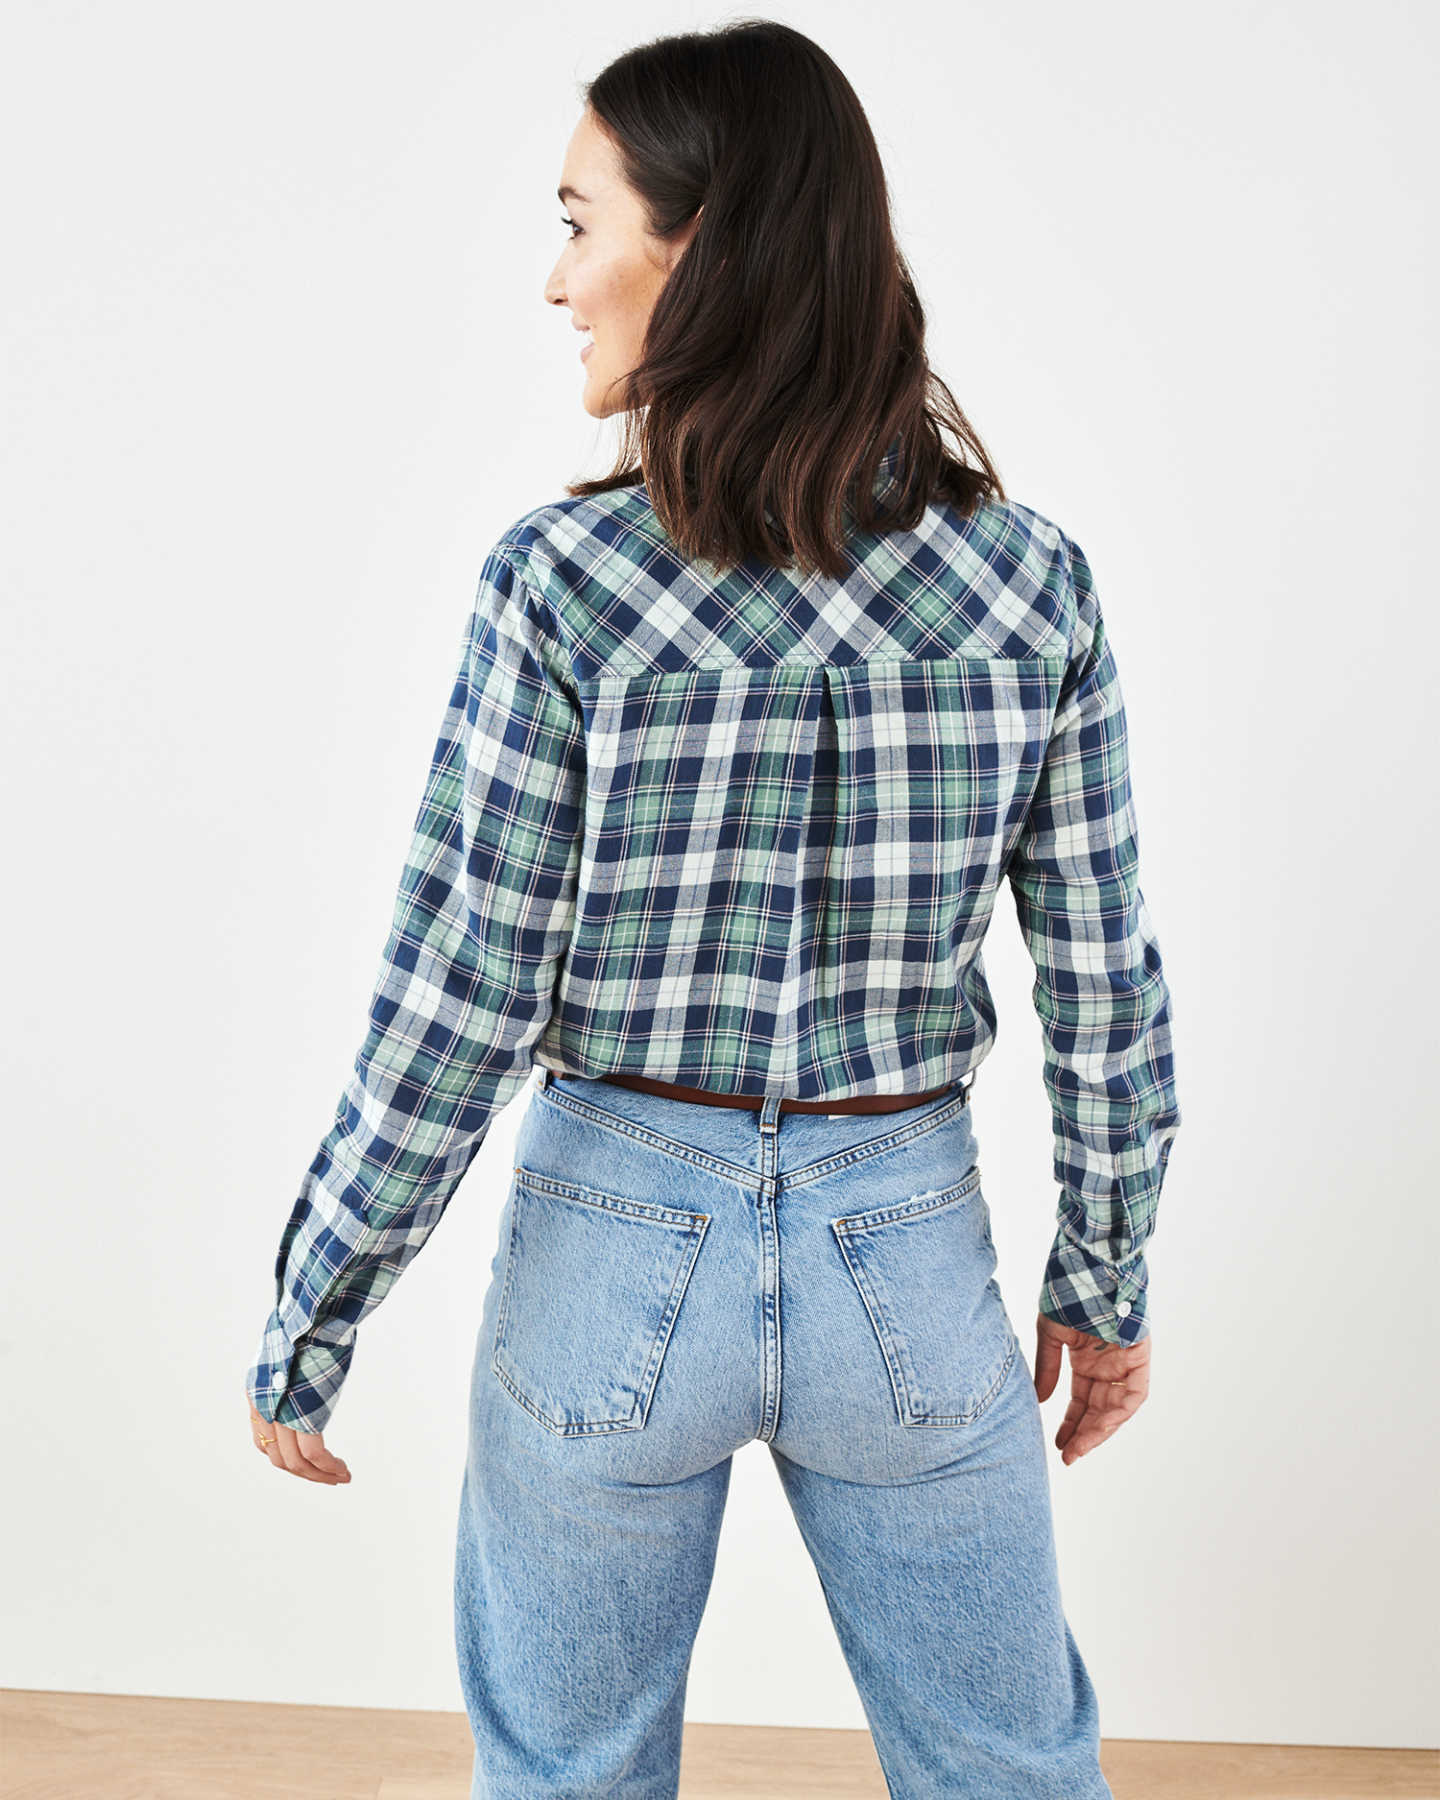 Brushed Twill Plaid Shirt - undefined - 4 - Thumbnail